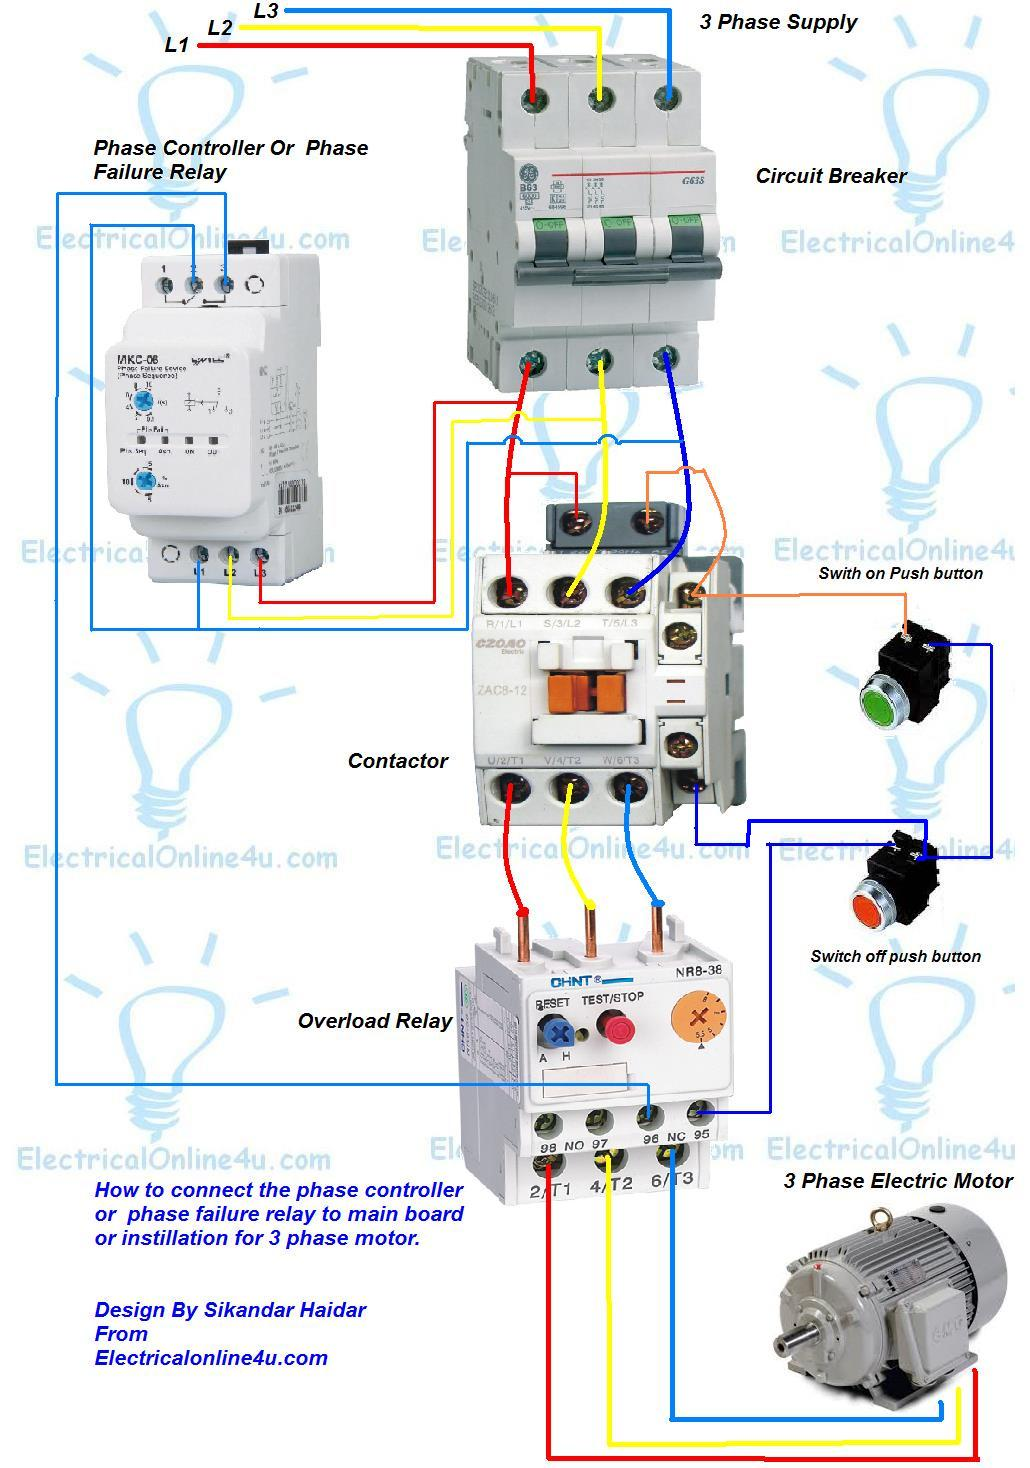 Phase%2Bfailure%2Brelay%2B %2Bphase%2Bcontroller%2Binstilaion%2Bin%2B3%2Bphase%2BMain%2Bboard%2Bor%2Bfor%2B3%2Bphase%2Bmotor phase controller wiring phase failure relay diagram electrical relay wiring diagram at mifinder.co